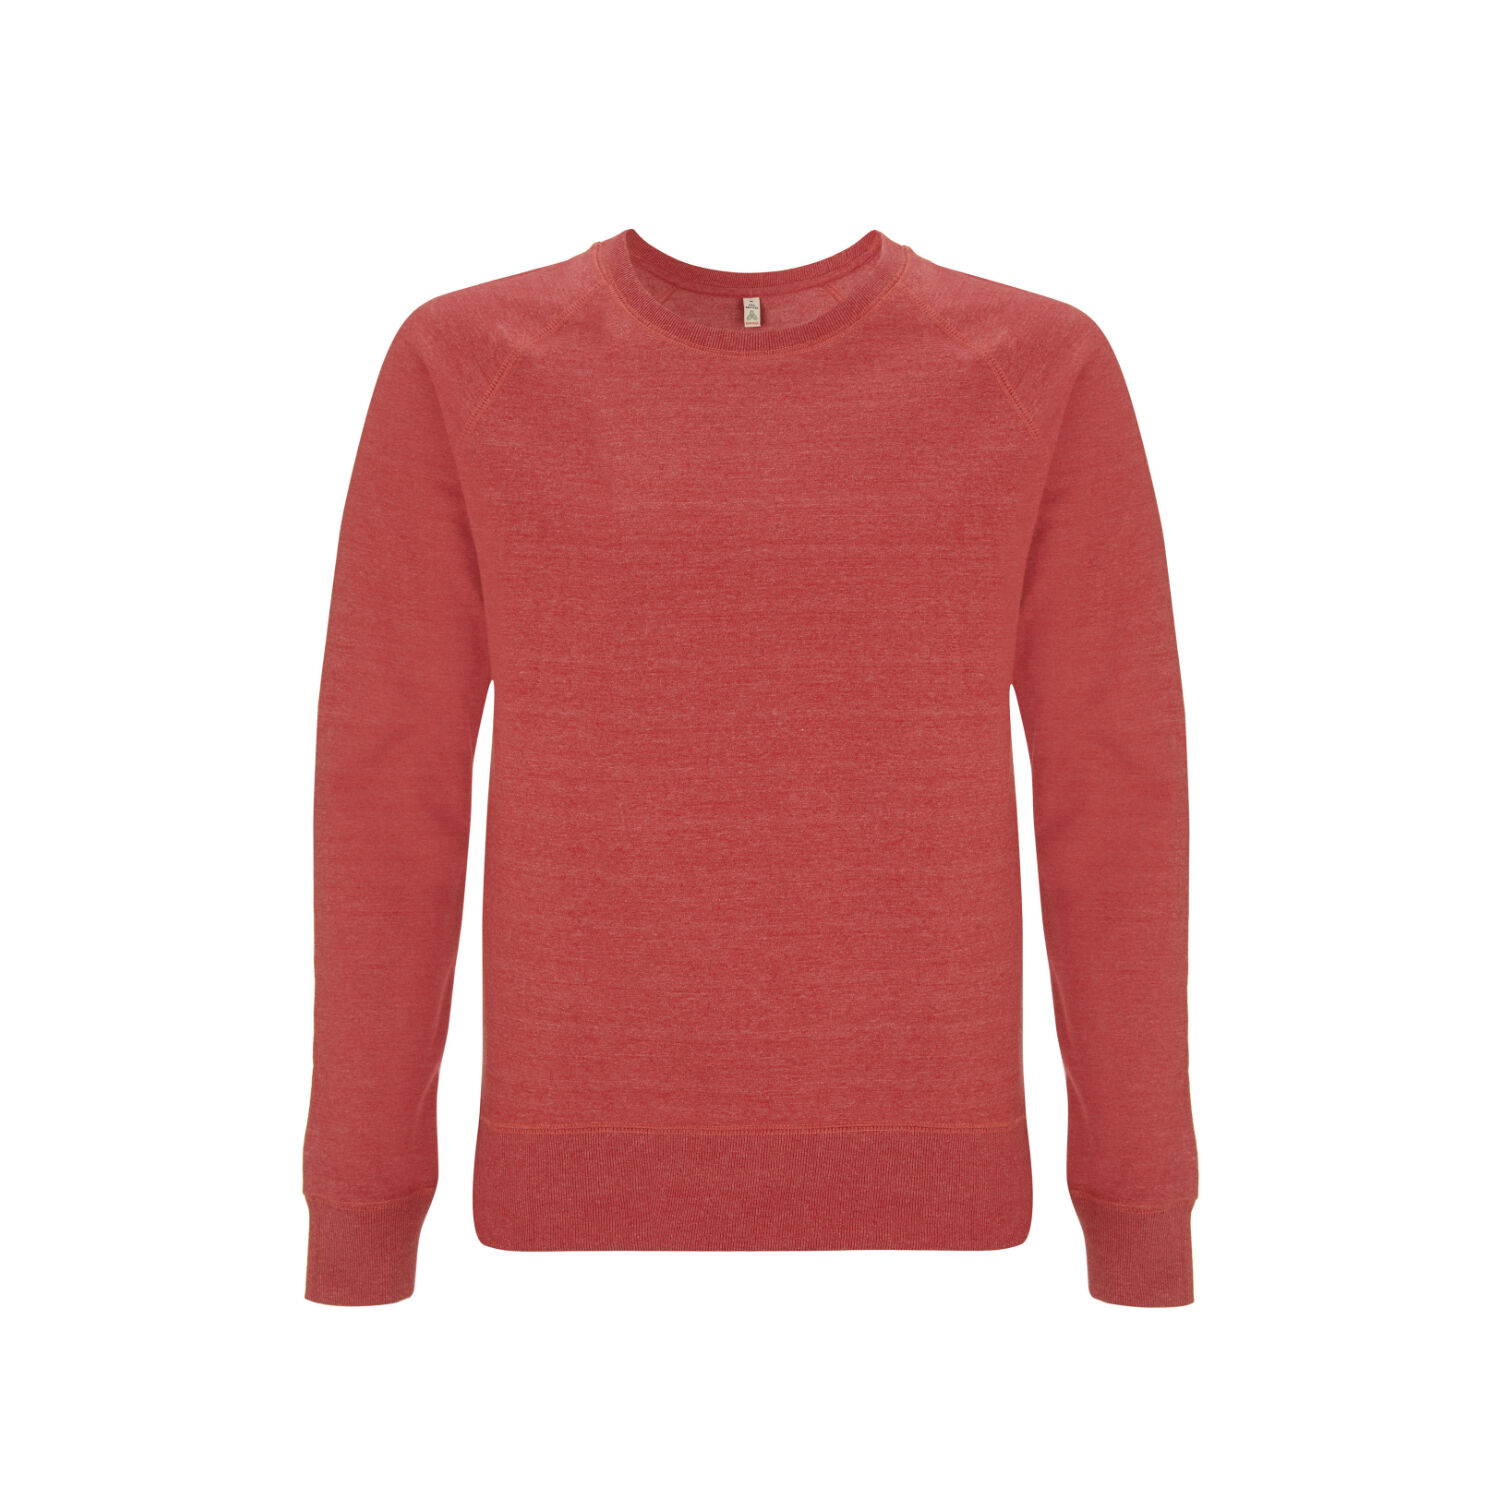 Unisex Salvage Organic Sweatshirt (Red)